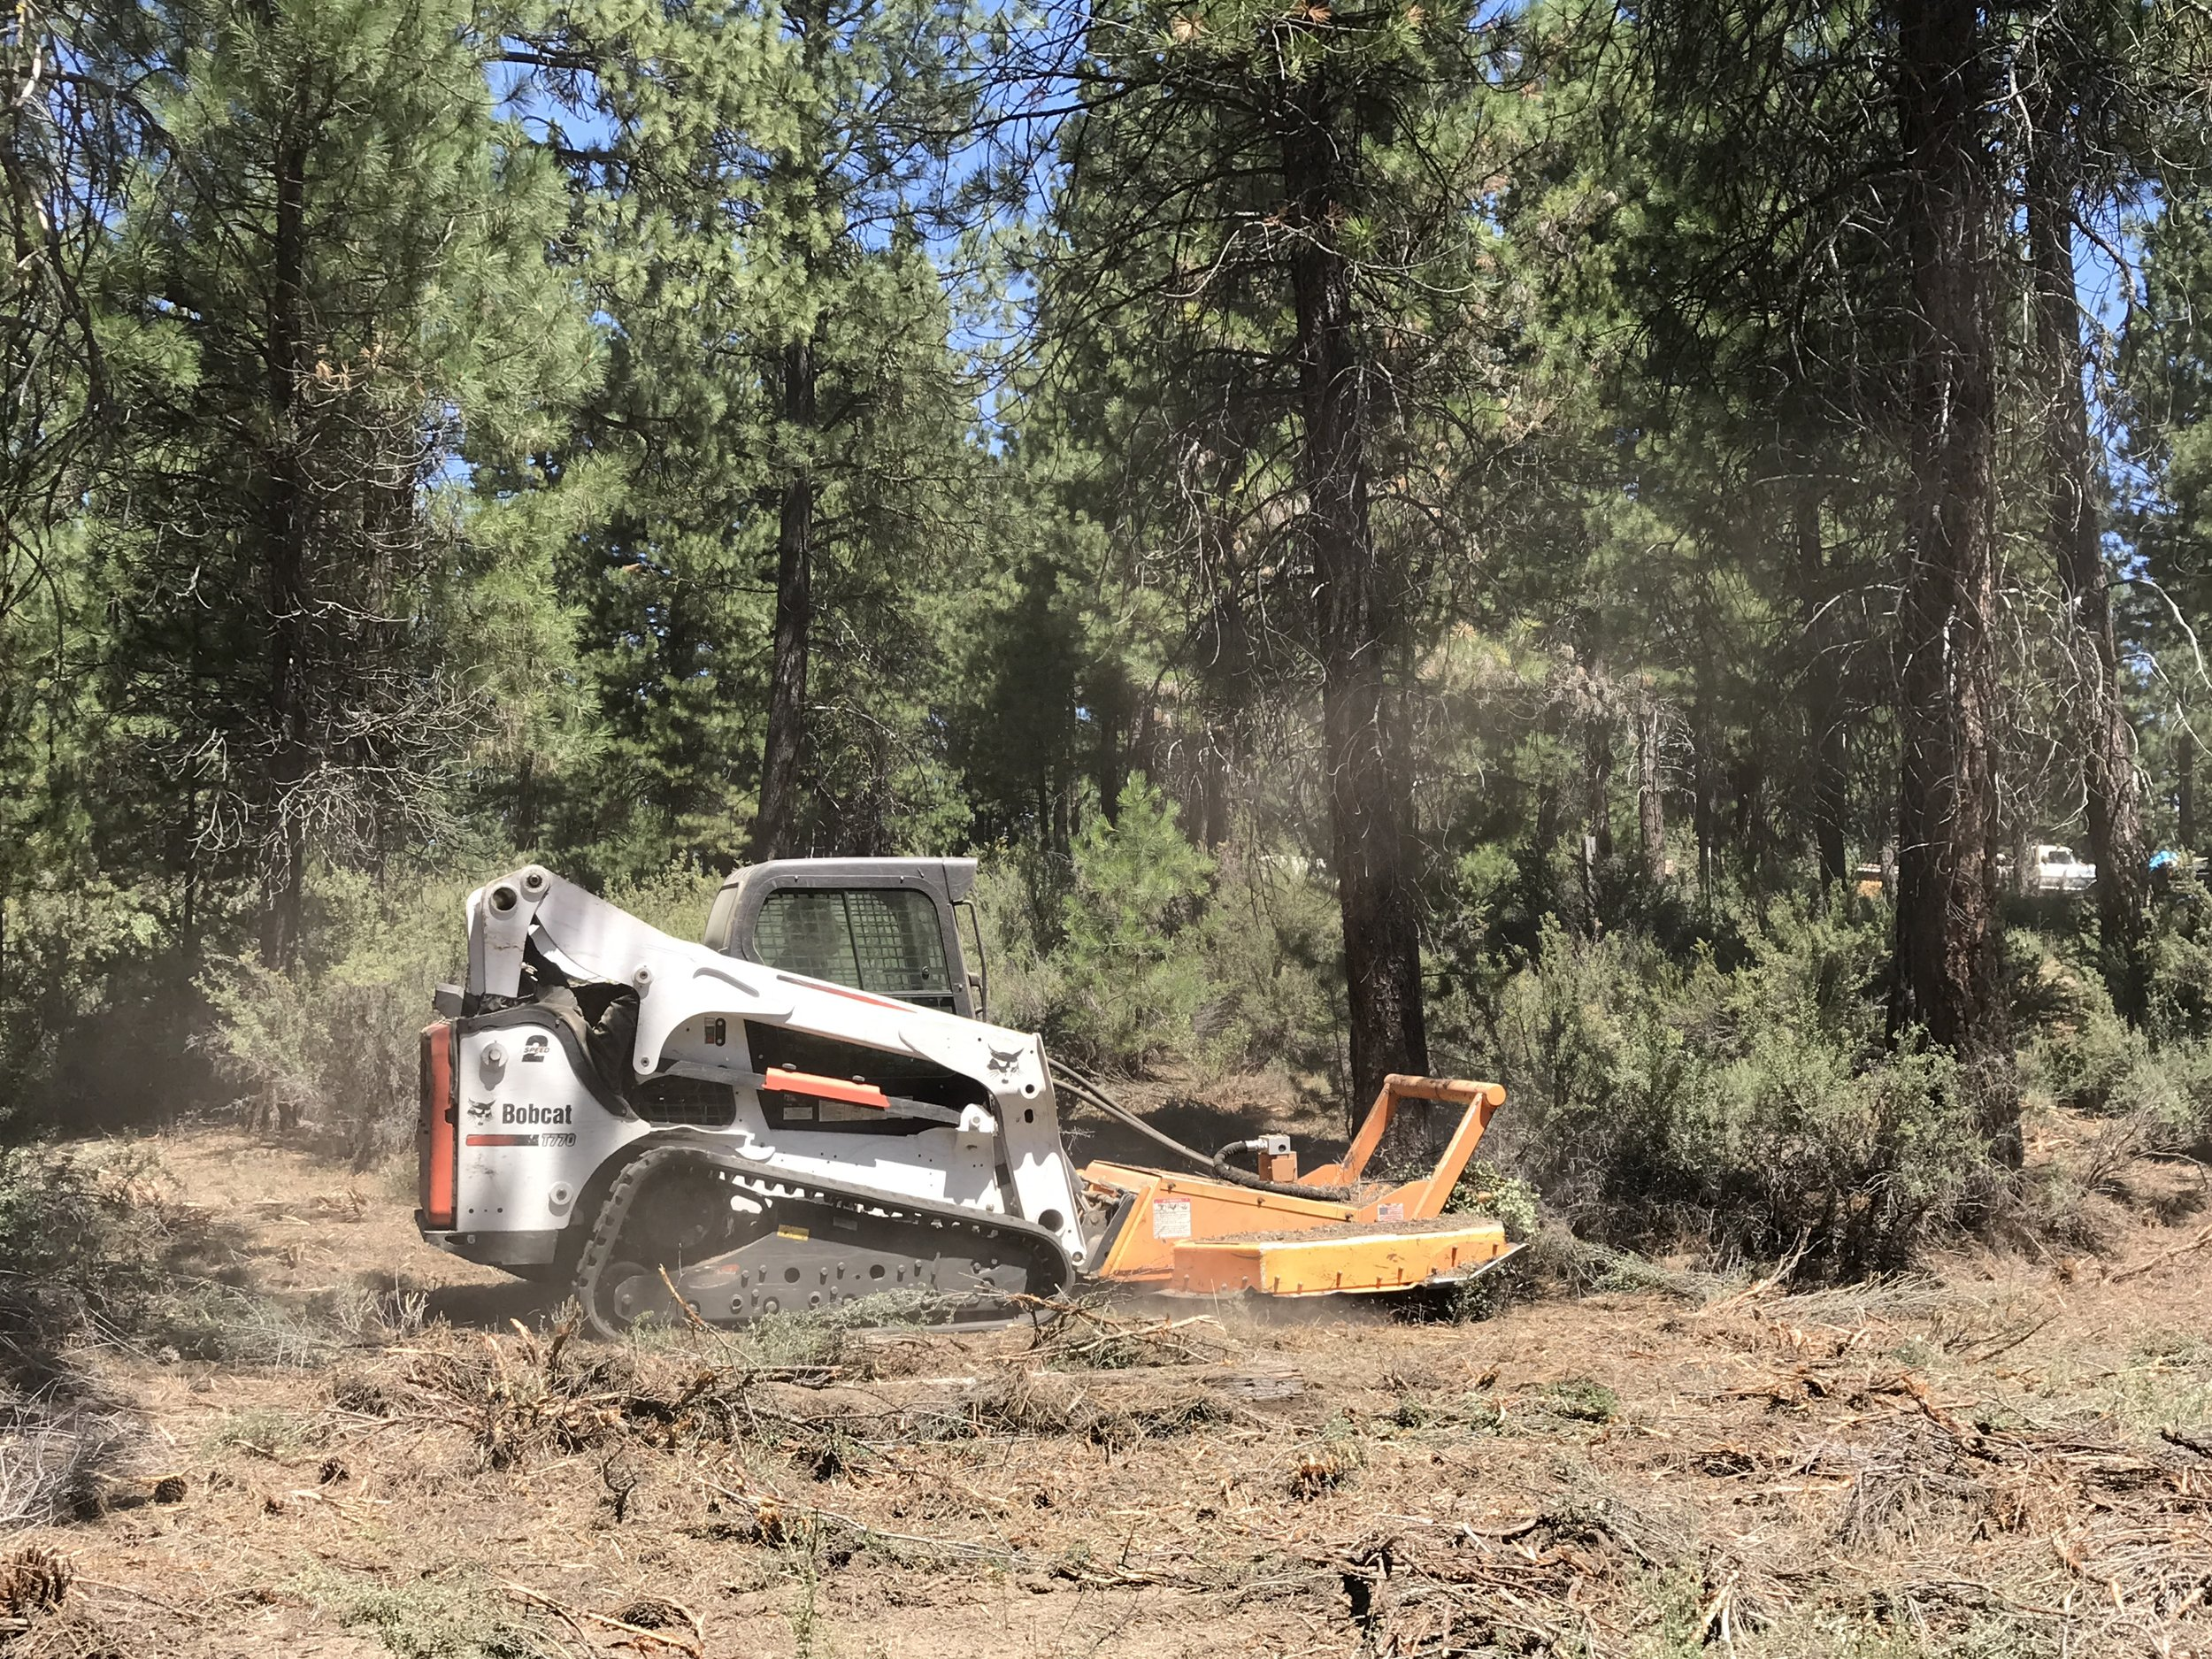 Keno Fire Chief John Ketchum uses their district Bobcat with a mower attachment to remove dense and decadent brush material and smaller diameter trees.